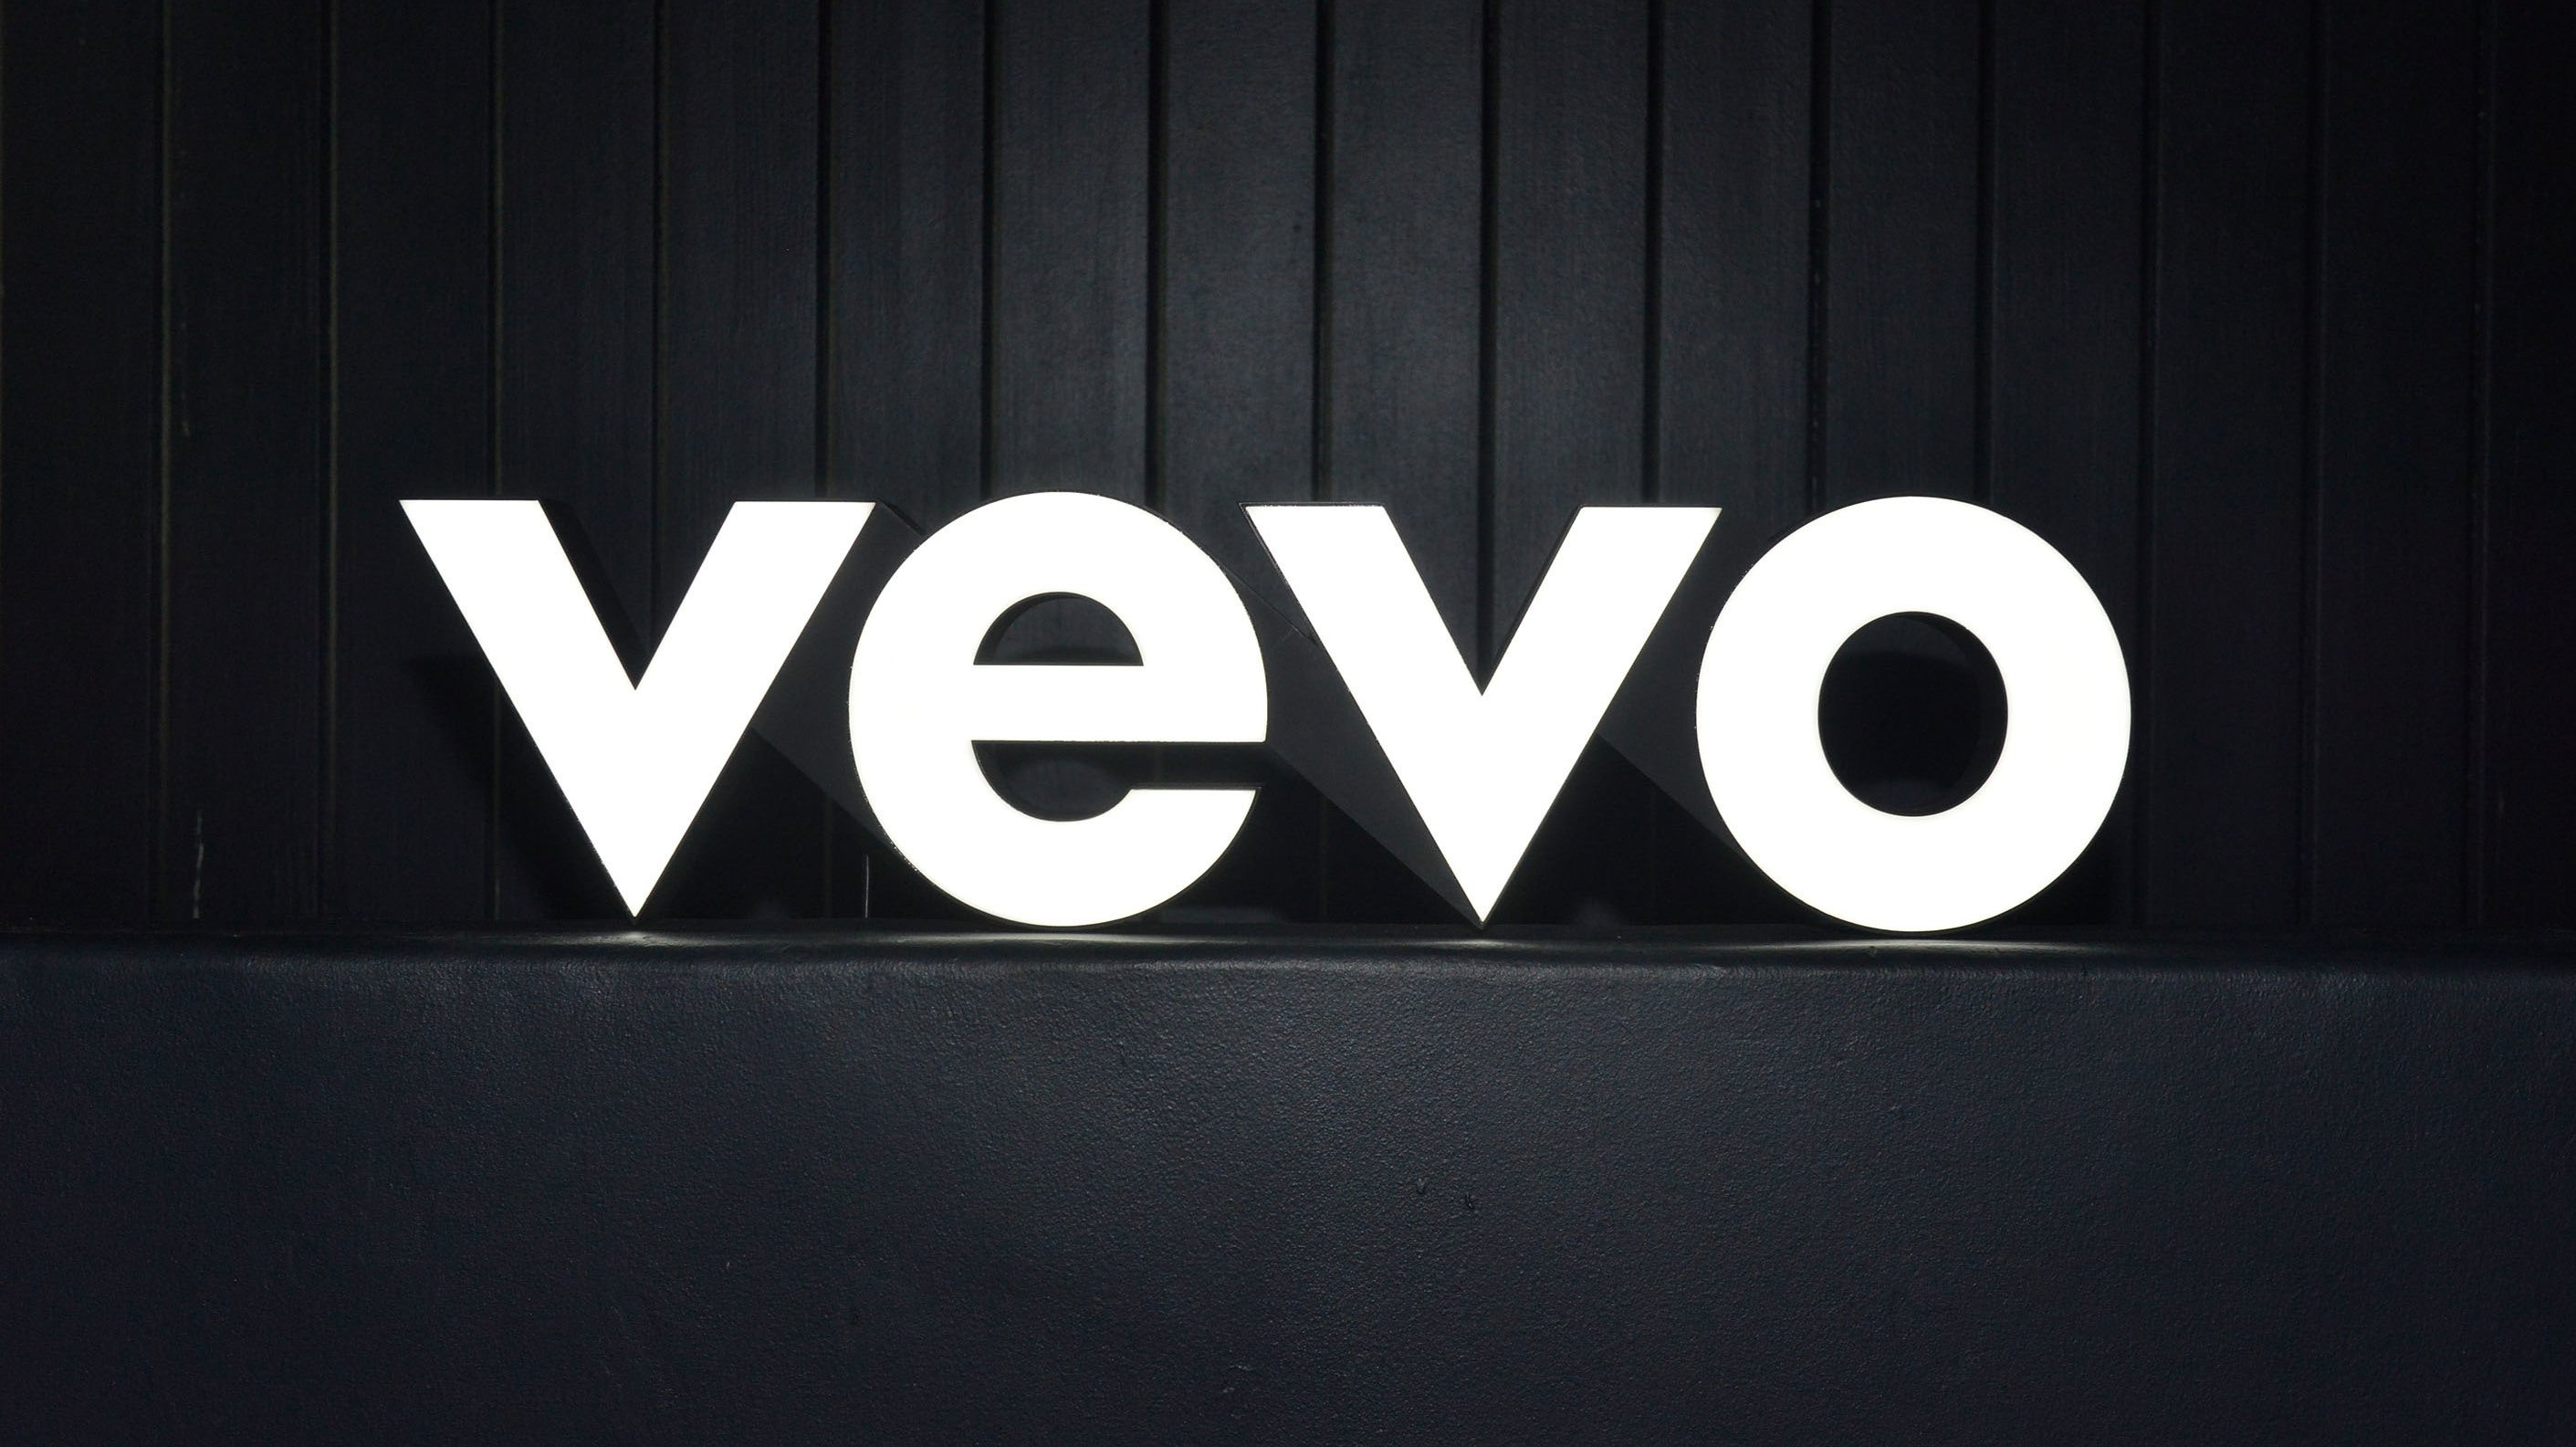 Record Labels Sensibly Decide To Wind Down Pointless Vevo Service